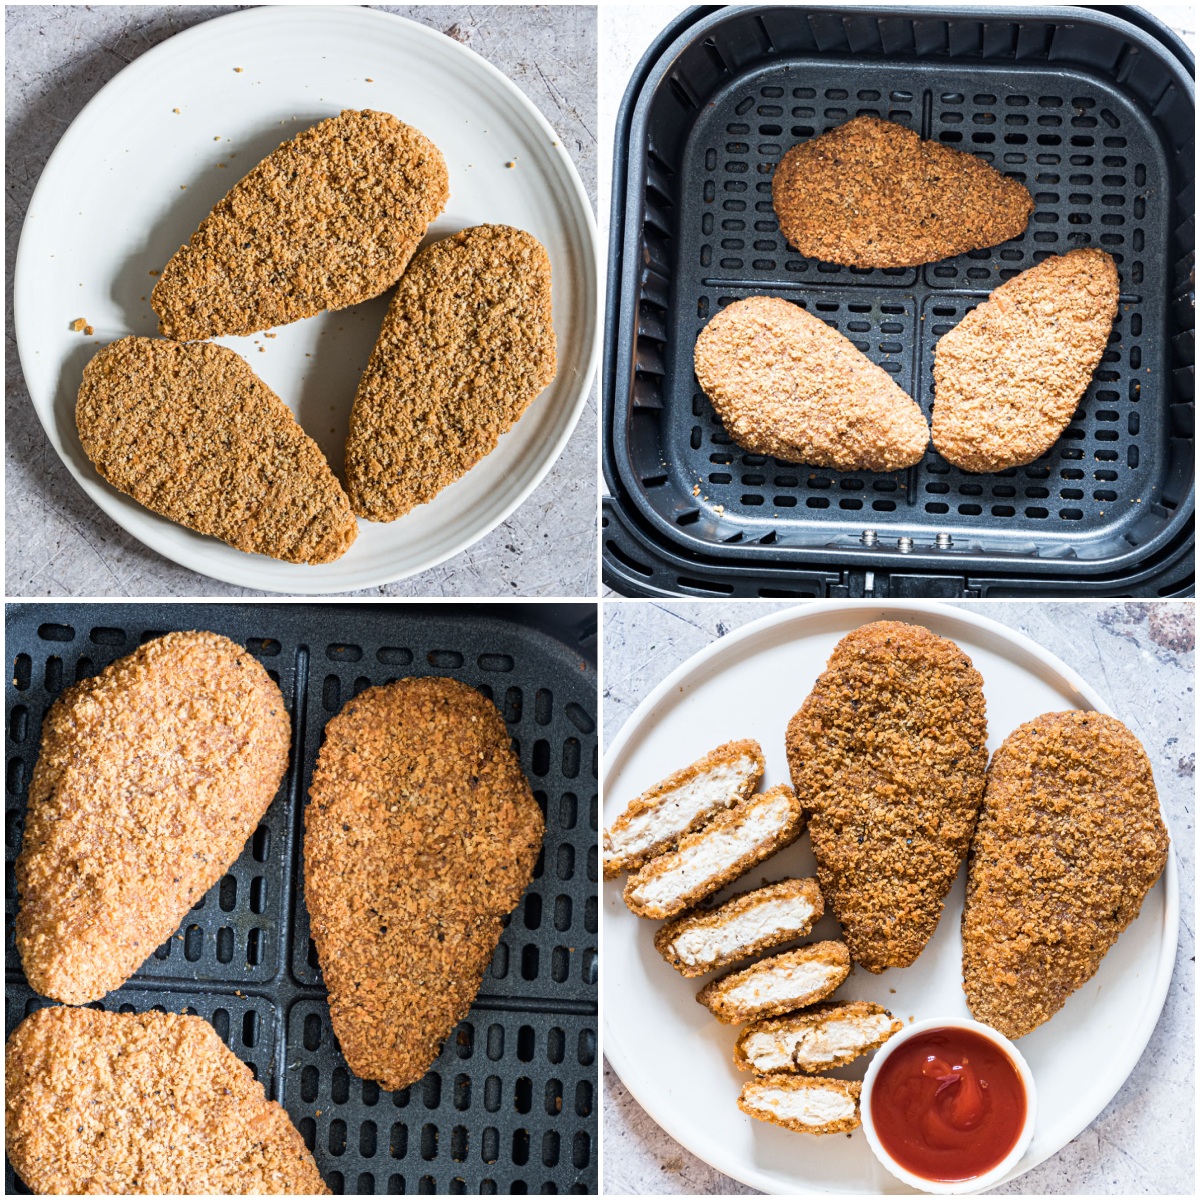 image collage showing the steps for how to reheat fried chicken in air fryer